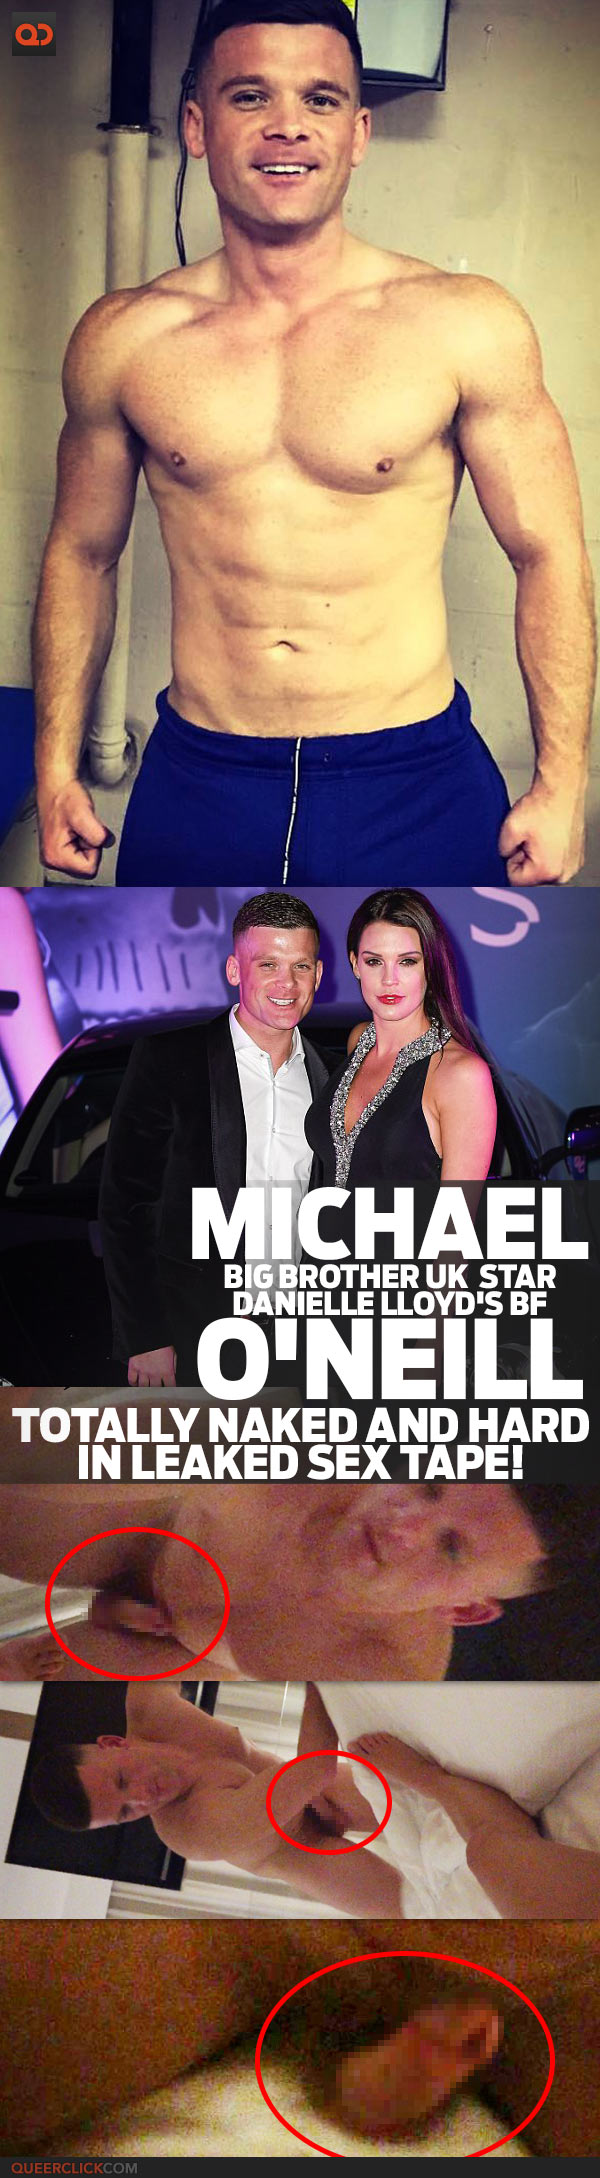 Michael O'Neill, Big Brother Star Danielle Lloyd's BF, Totally Naked And Hard In Leaked Sex Tape!